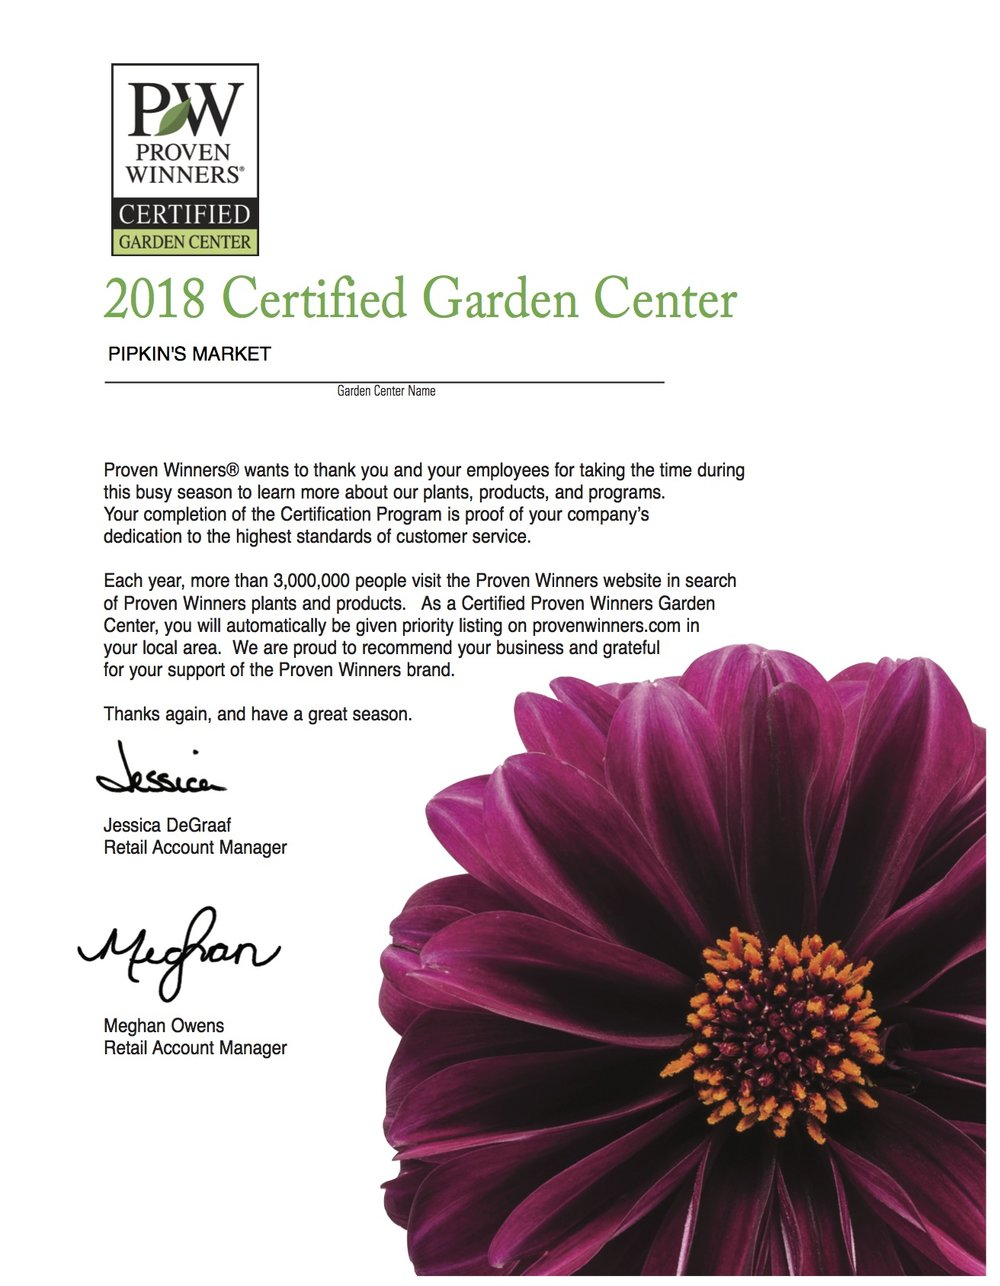 2018_certified_garden_center_certificate copy.jpg